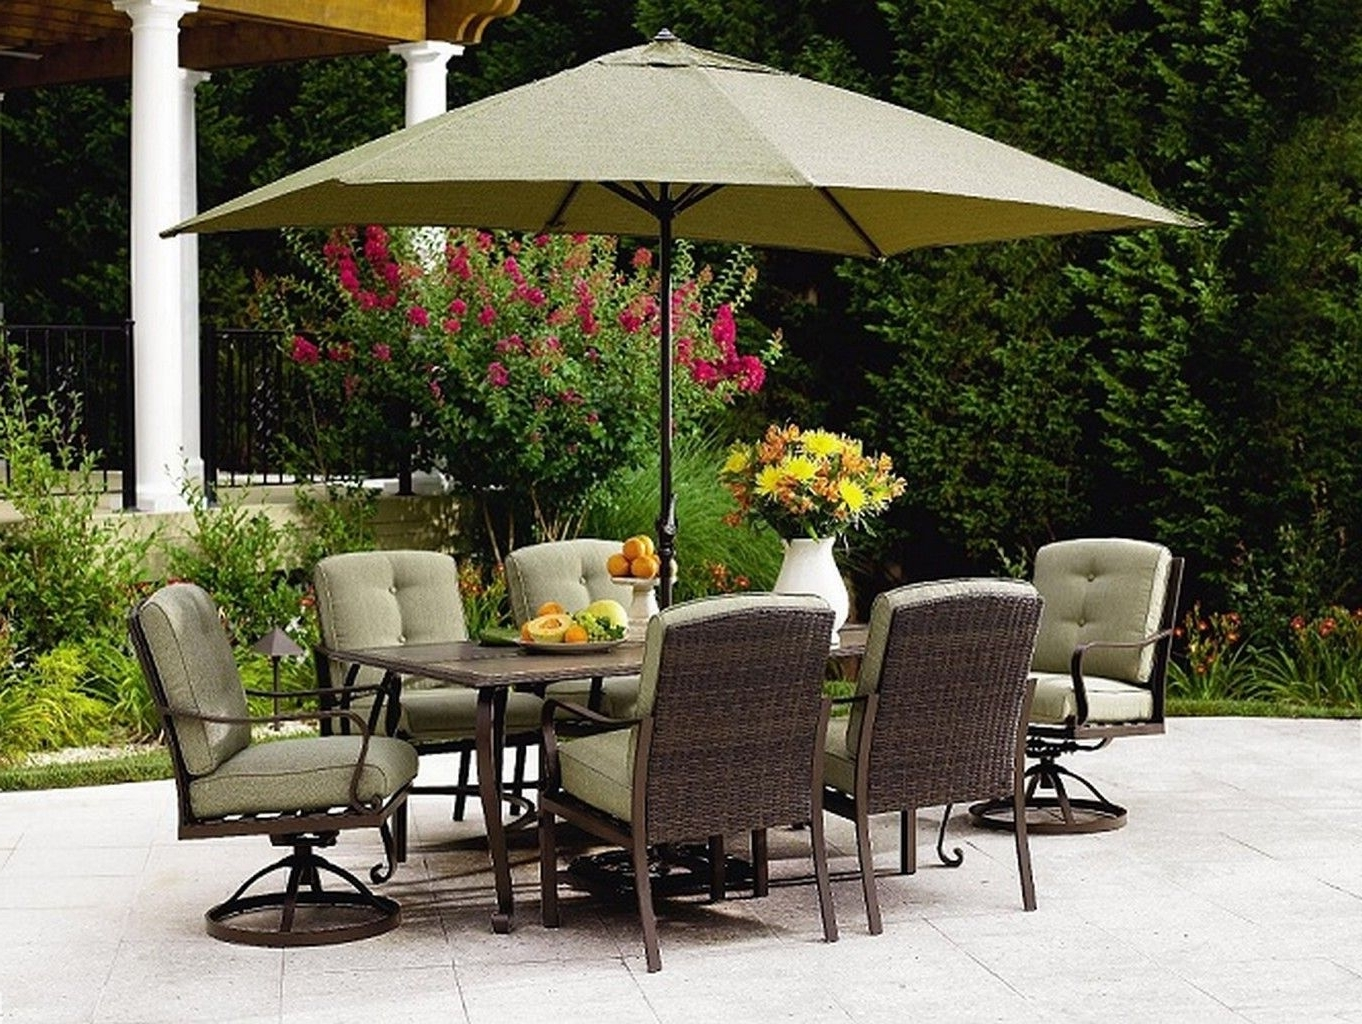 Most Recently Released Patio Dining Umbrellas With Regard To Cool Outdoor Patio Sets With Umbrella Above Square Table And Chairs (View 5 of 20)